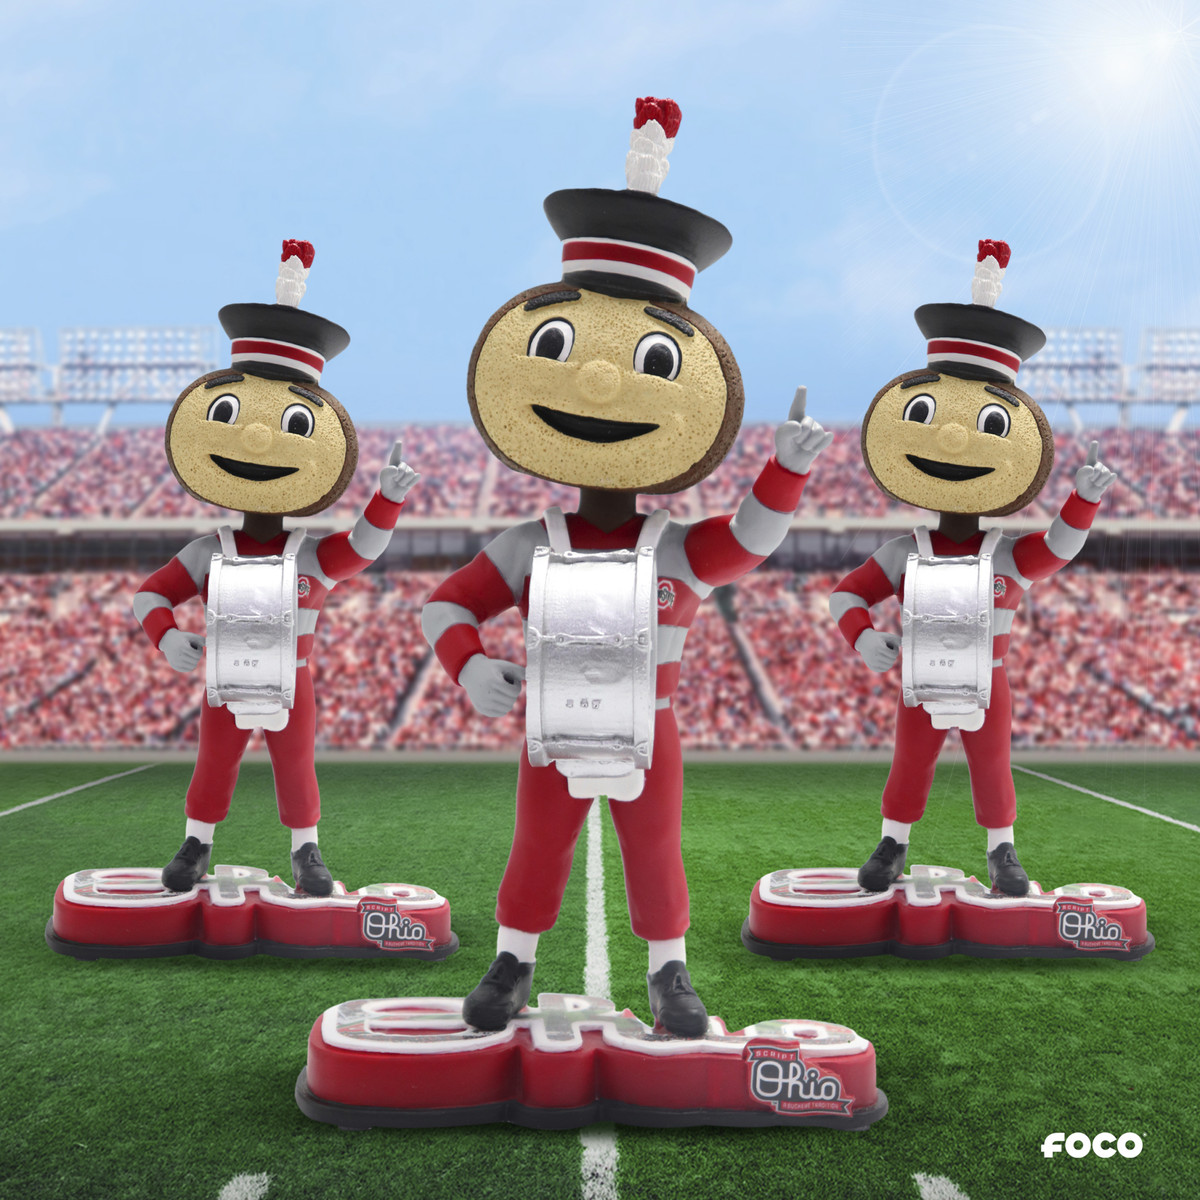 Ohio State bobblehead from FOCO combines Brutus Buckeye, marching band